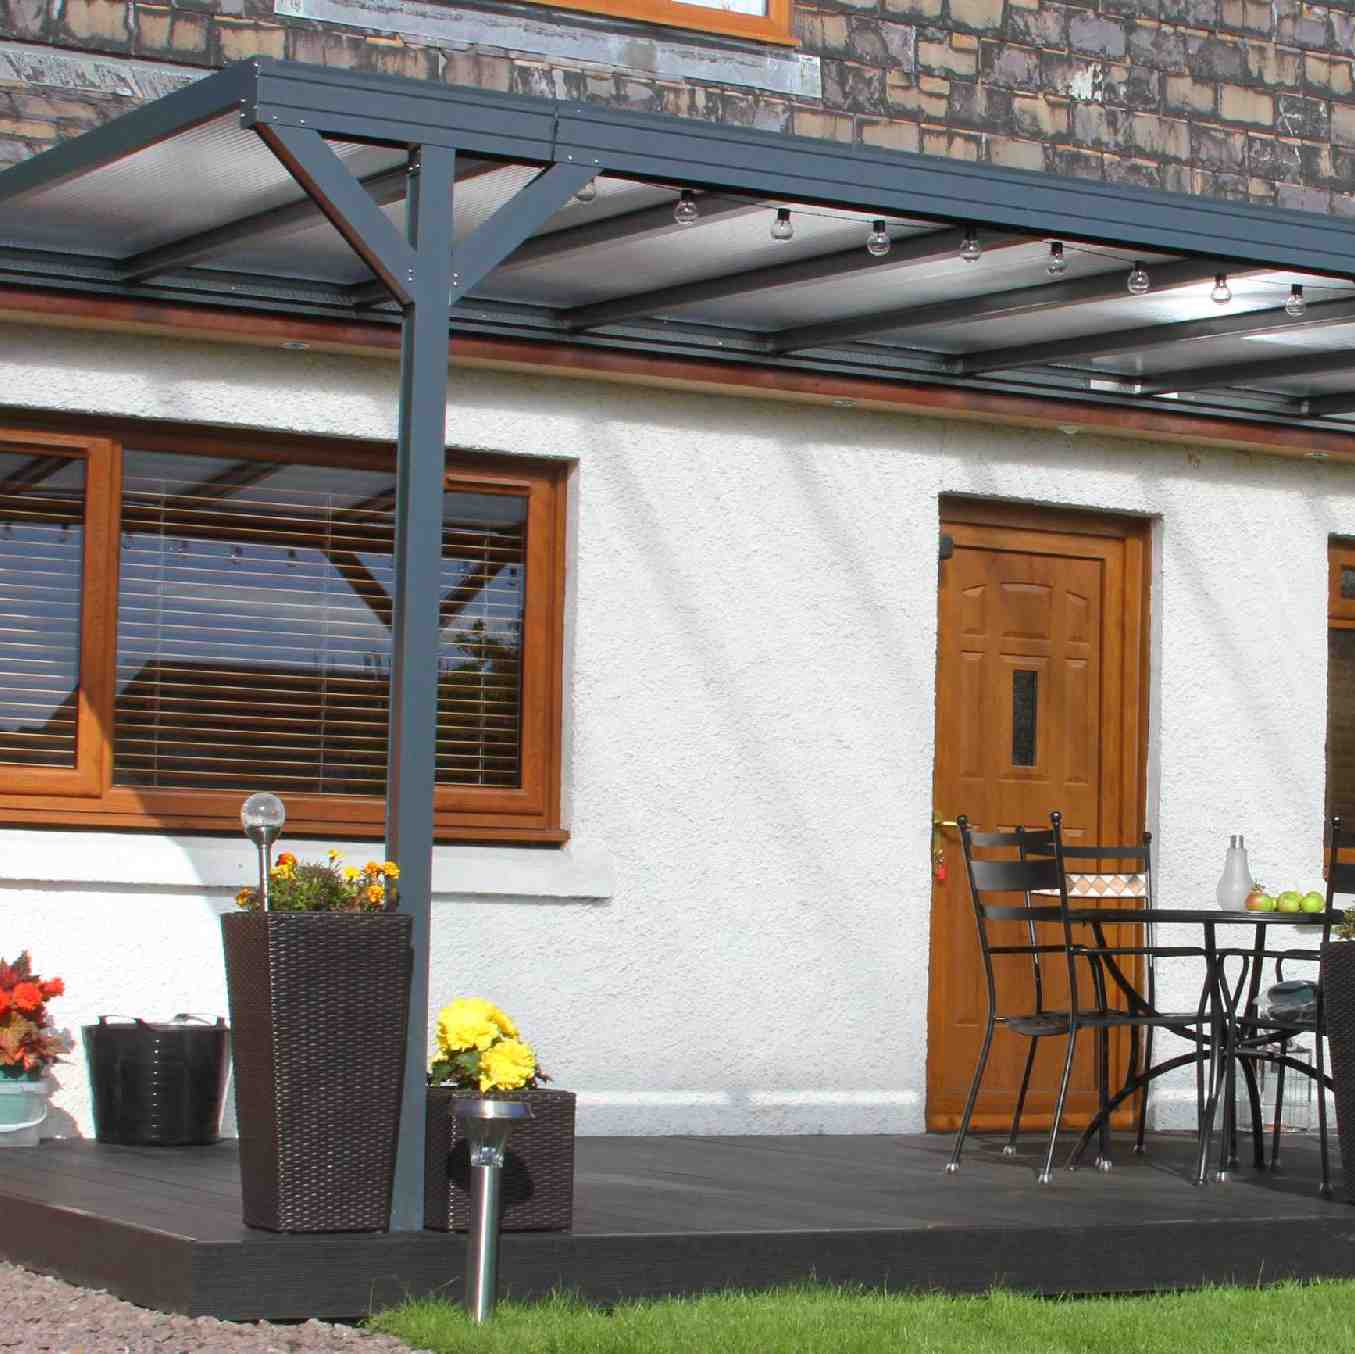 Omega Verandah, Anthracite Grey, 6mm Glass Clear Plate Polycarbonate Glazing - 2.1m (W) x 3.0m (P), (2) Supporting Posts